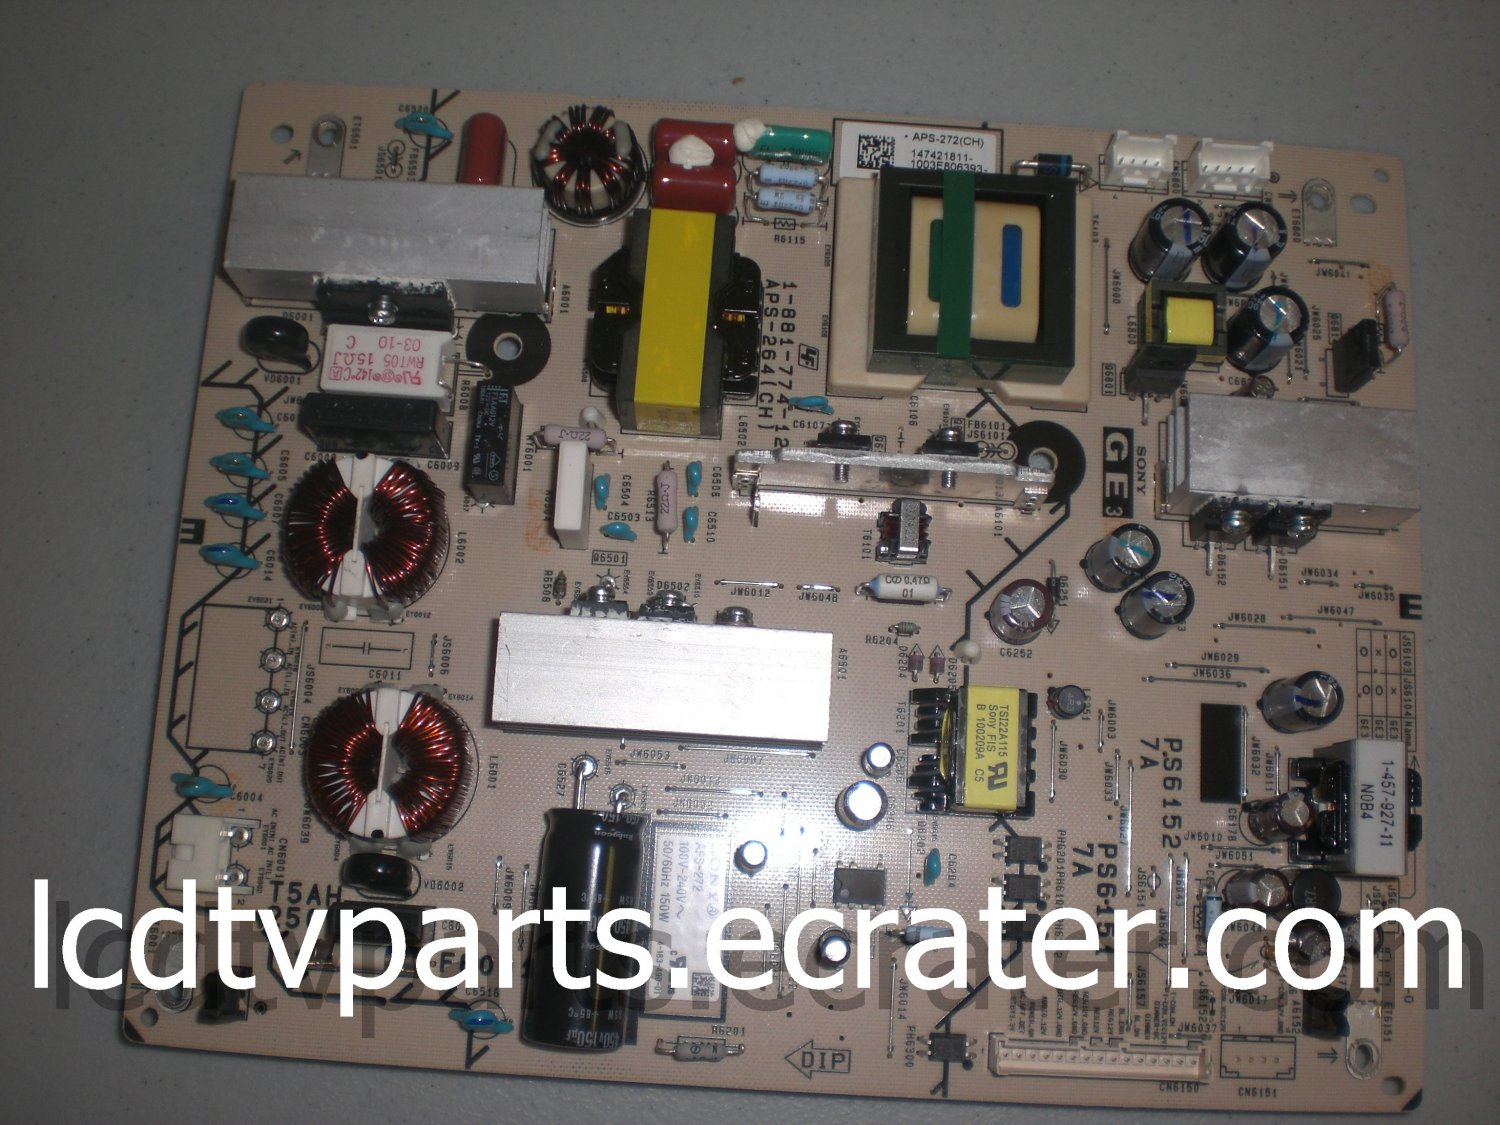 1-474-218-11, APS-272(CH), 1-881-774-12, APS-264(CH) , Power Supply for SONY KDL-40EX600